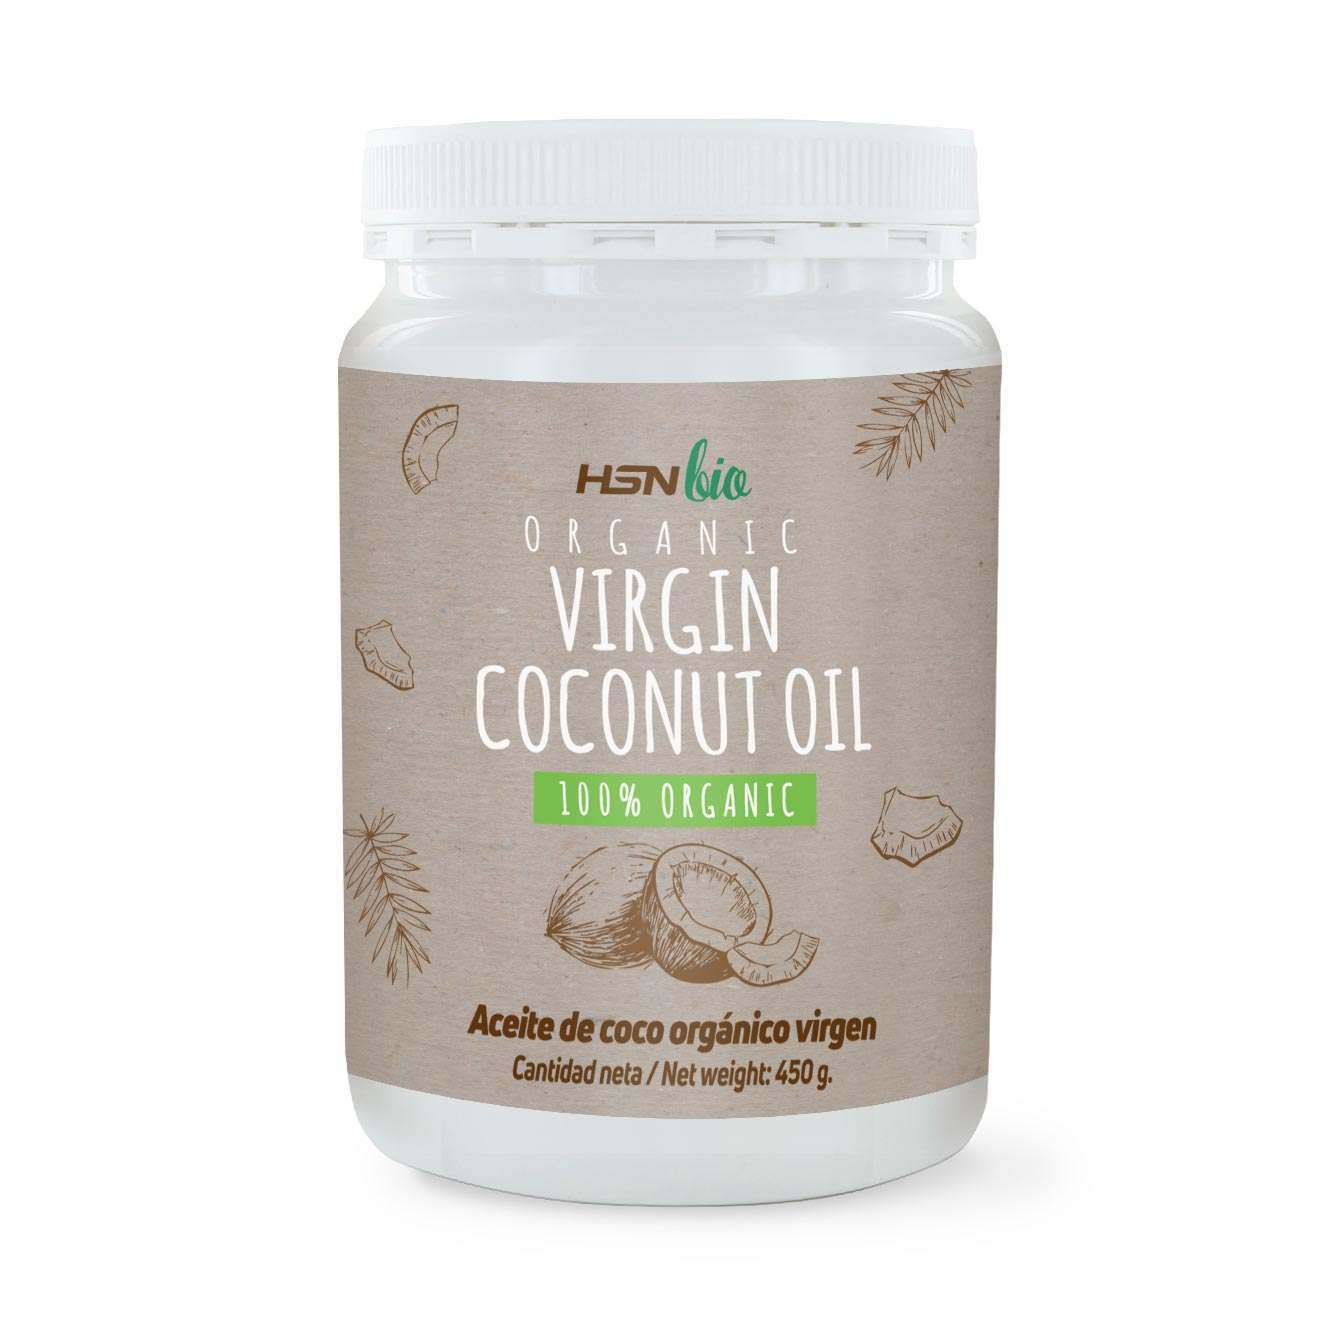 ORGANIC VIRGIN COCONUT OIL - 450g